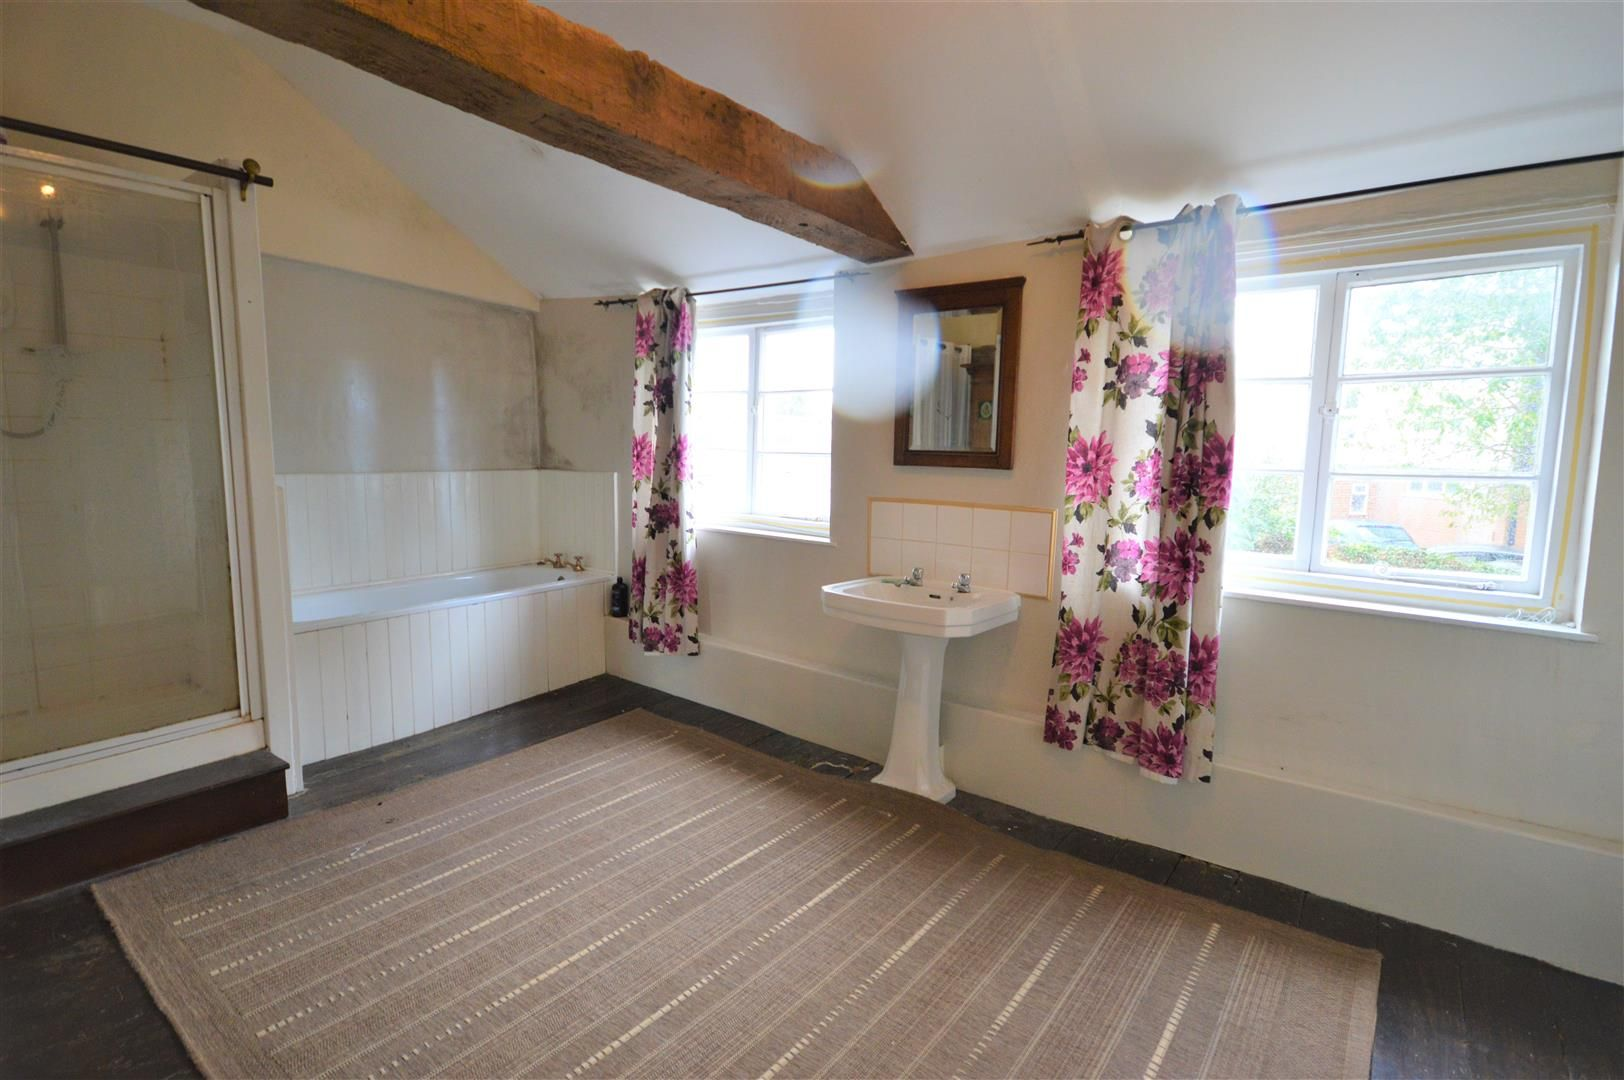 4 bed terraced for sale in Leominster 5